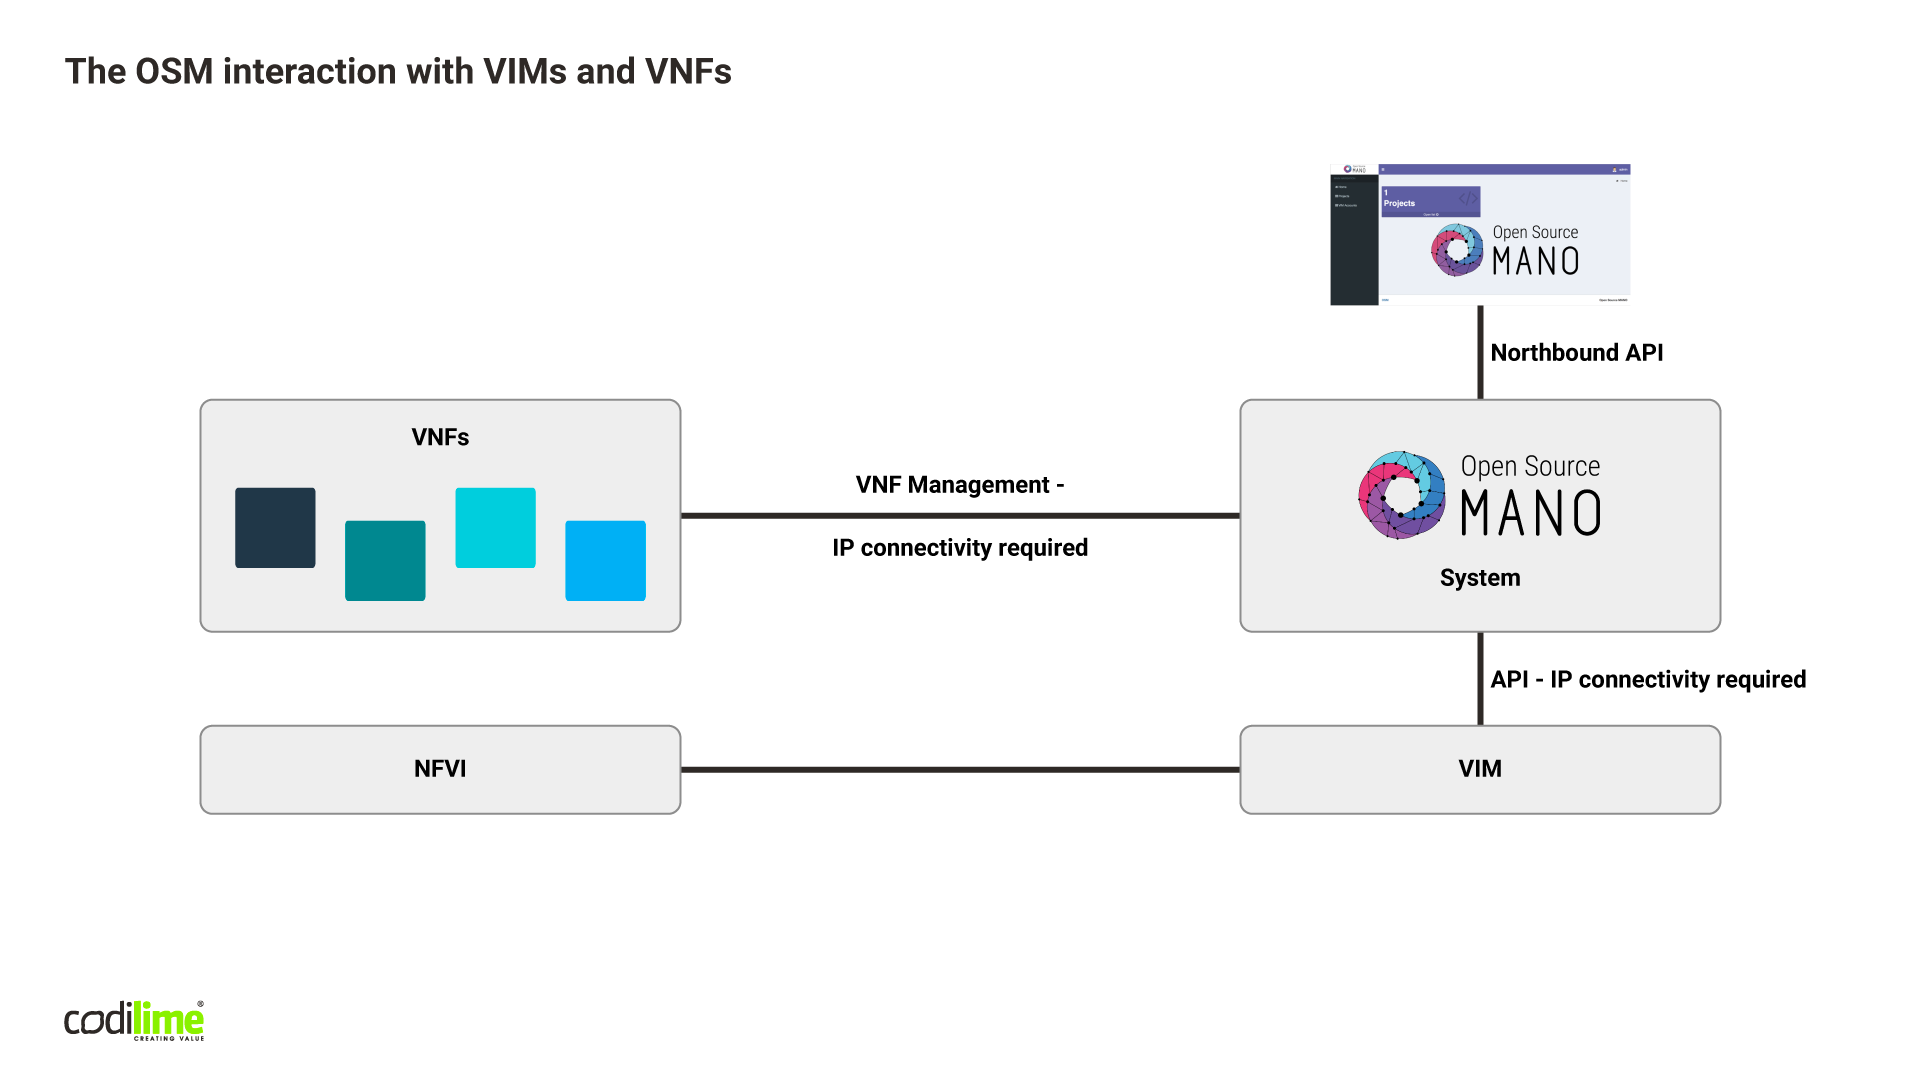 The OSM interaction with VIMs and VNFs